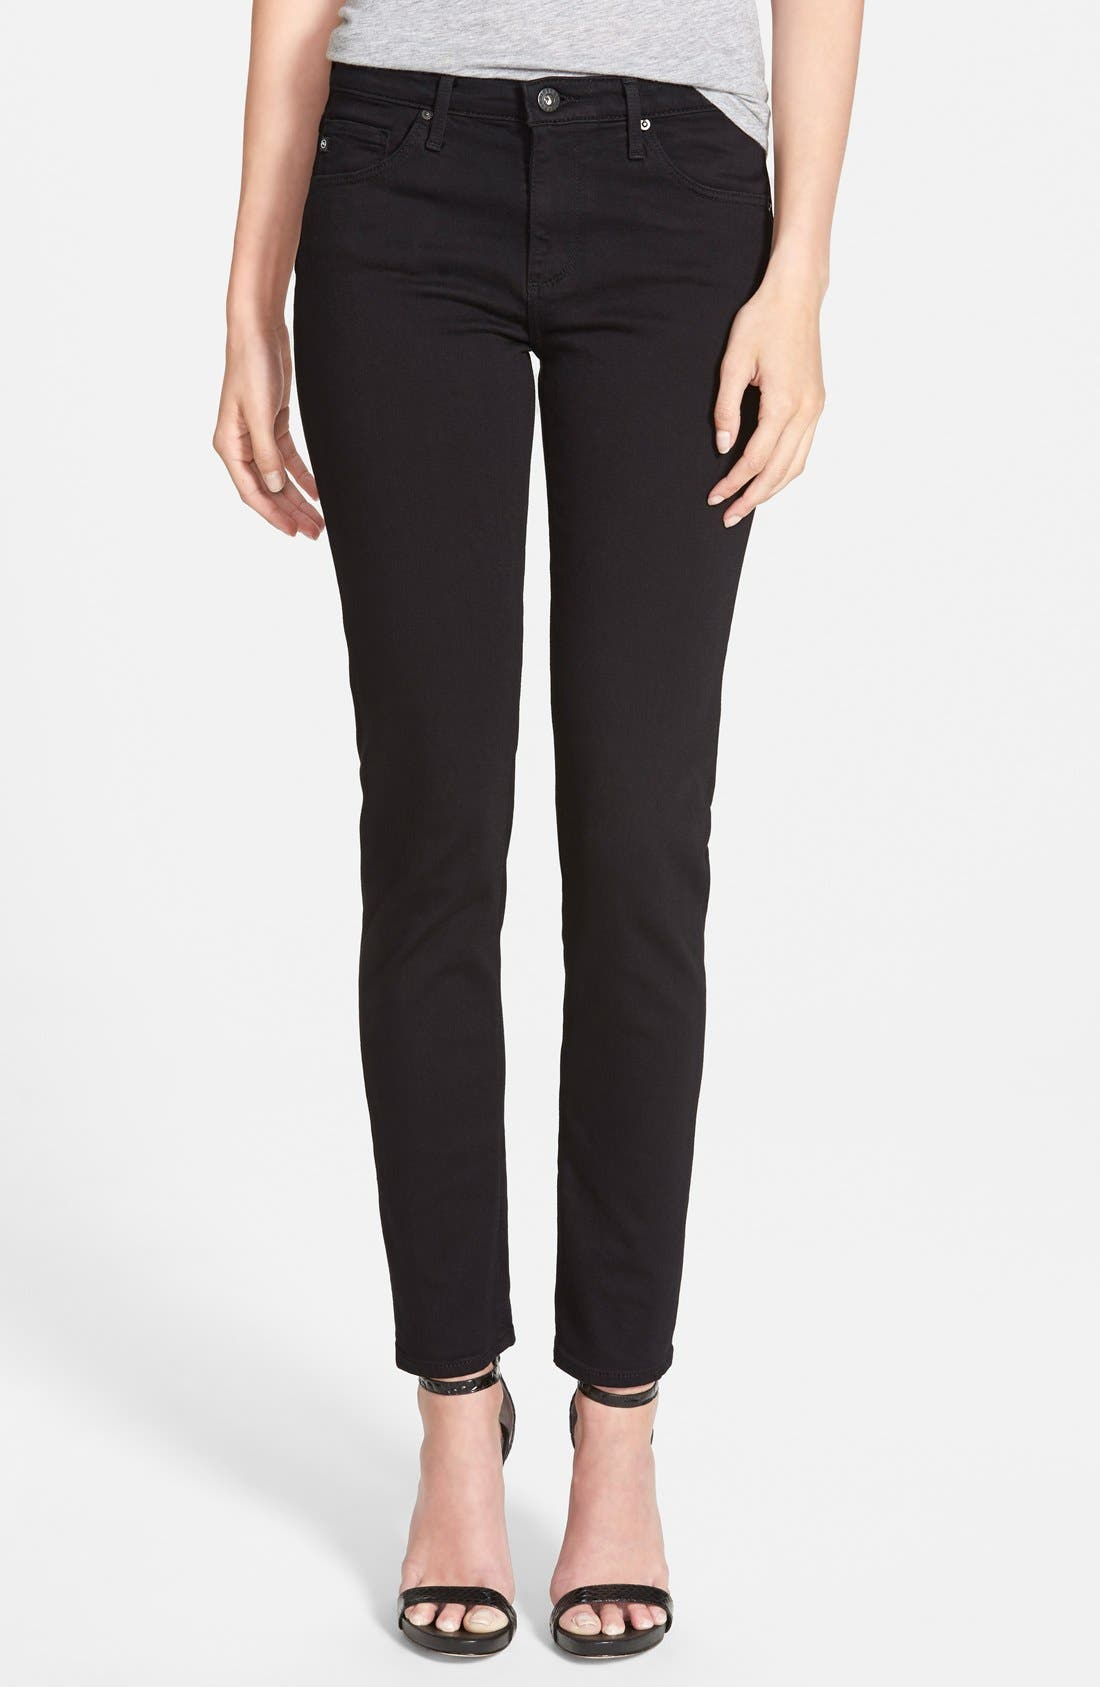 AG, 'Prima' Mid Rise Cigarette Jeans, Main thumbnail 1, color, SUPER BLACK